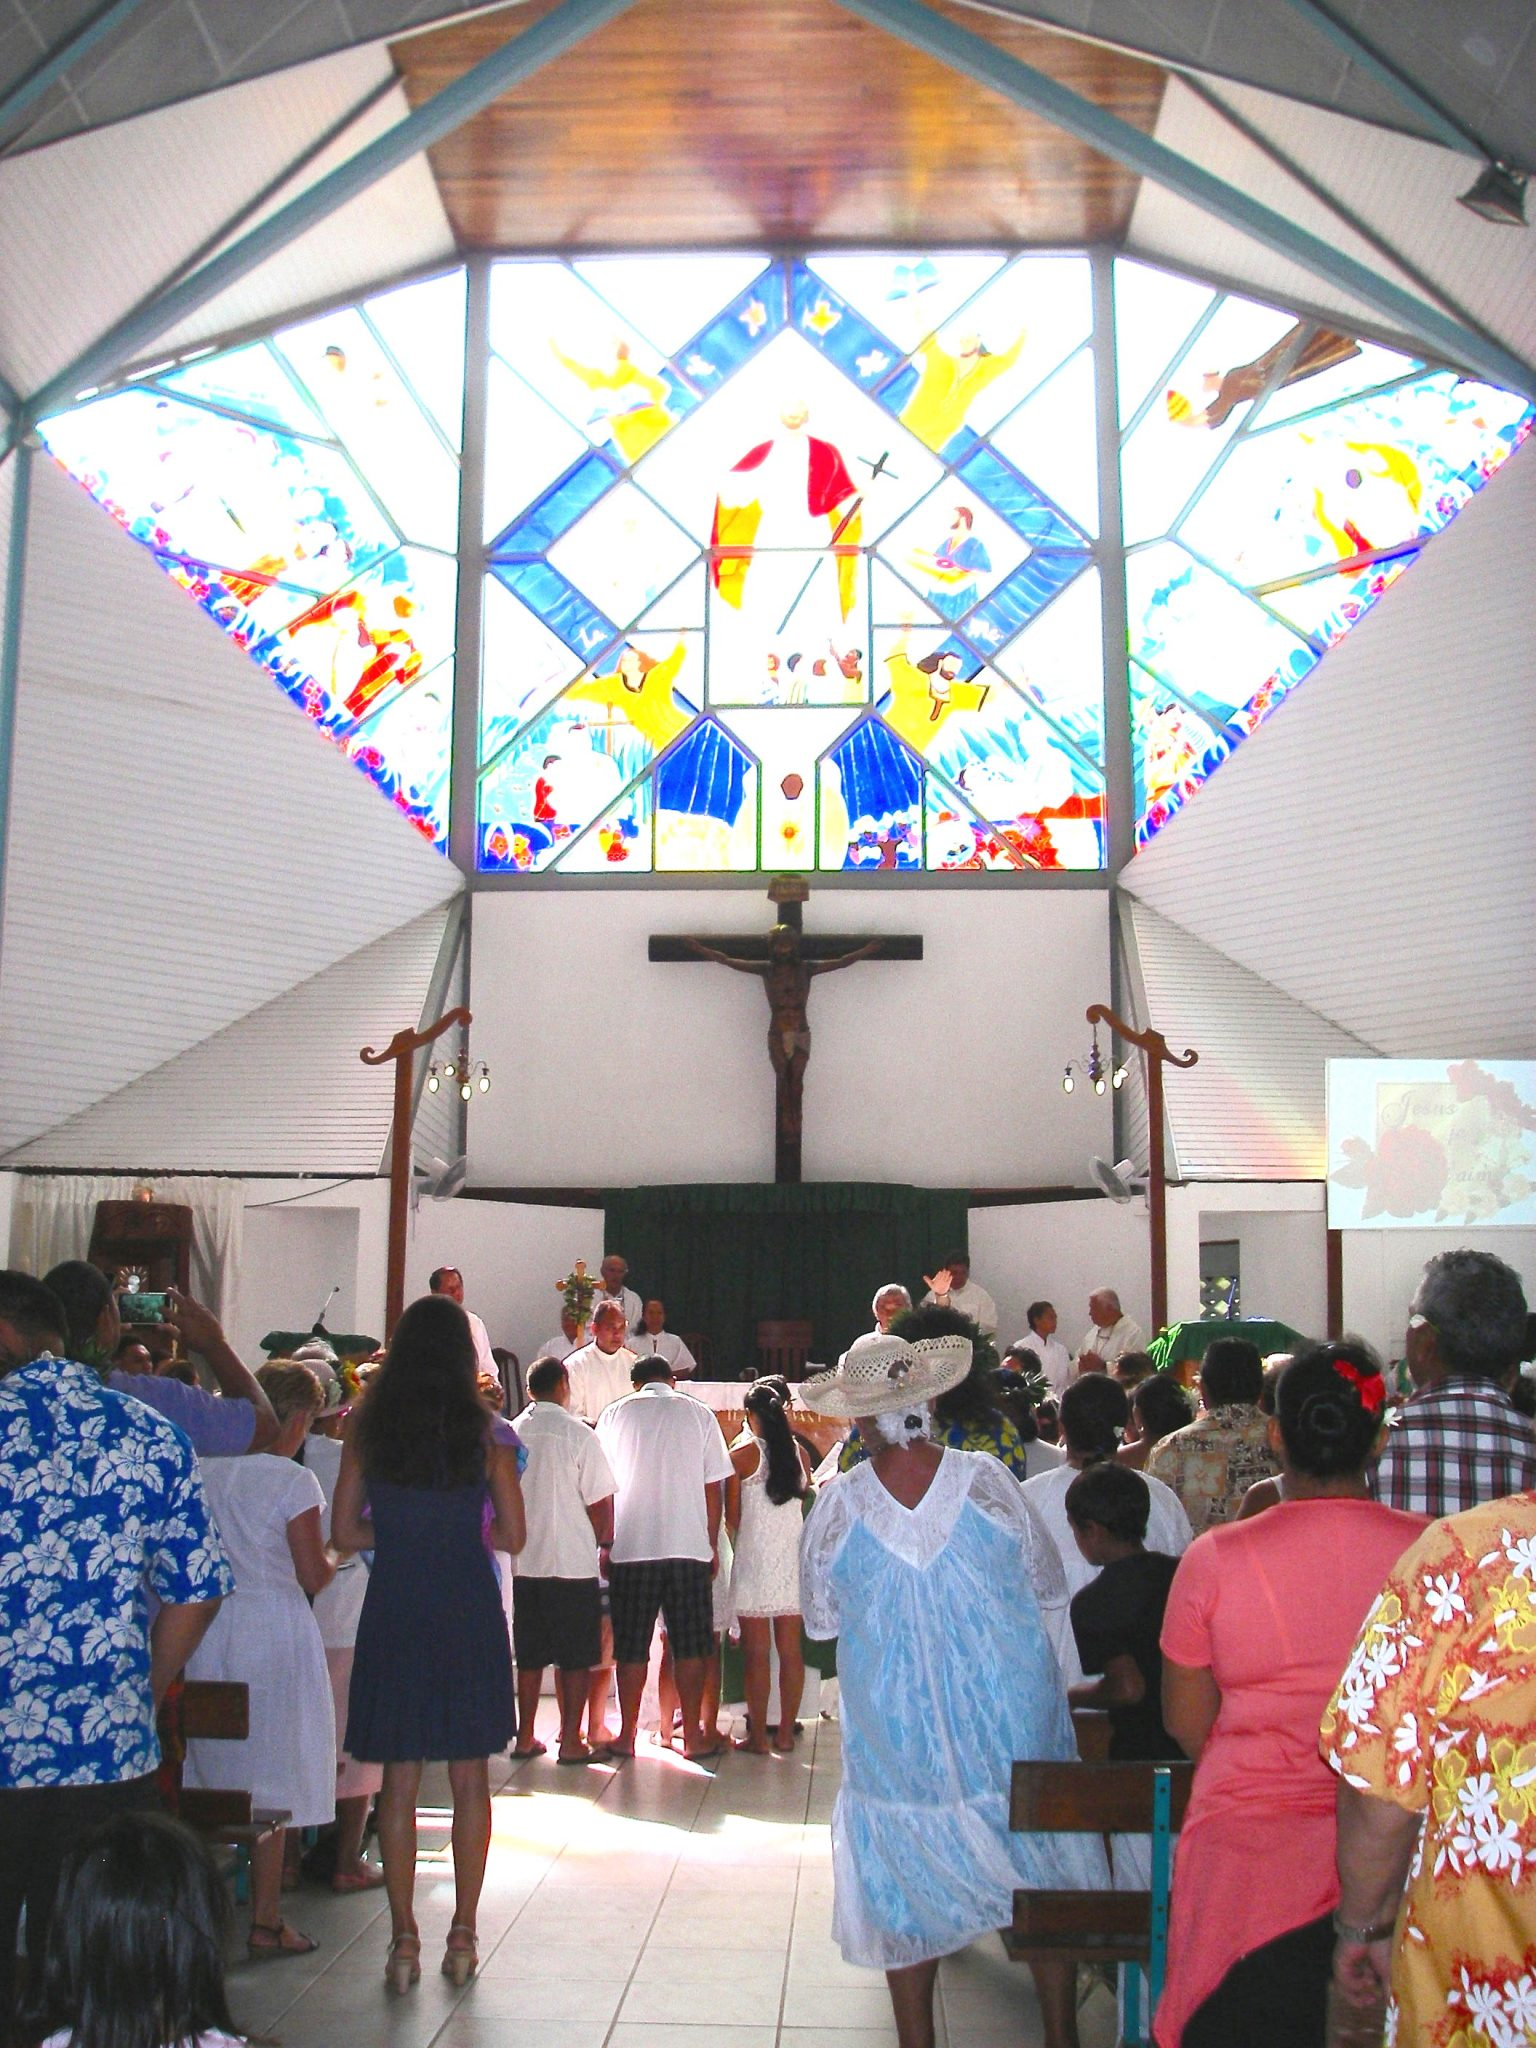 32. We had the honor to attend many rites of holy baptism at a Bora Bora church